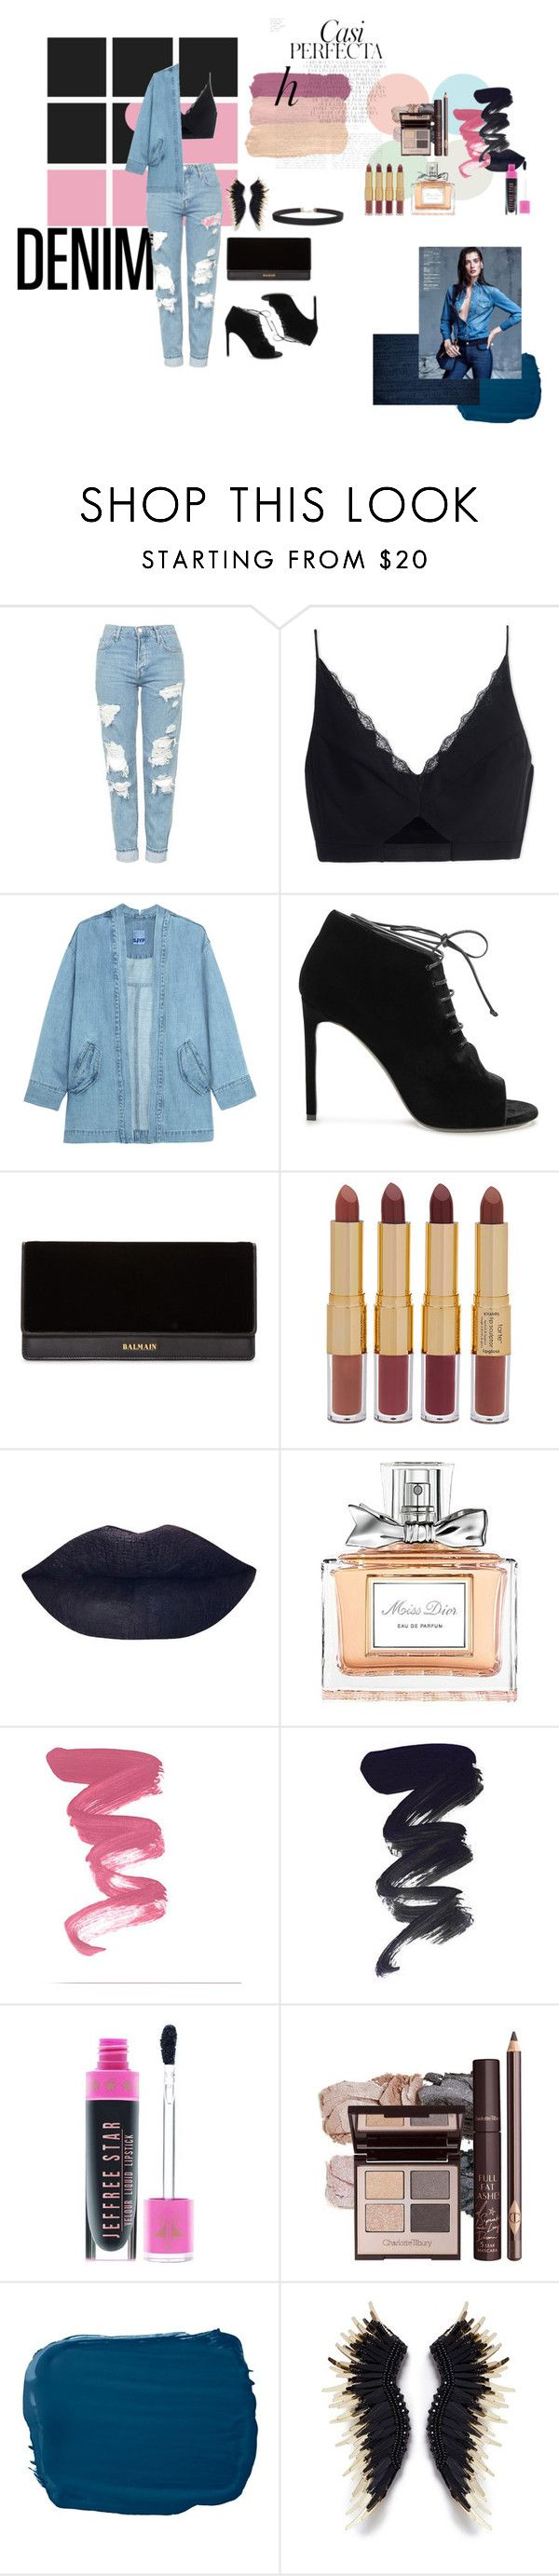 """Untitled #10"" by amirahsyanti ❤ liked on Polyvore featuring Topshop, Versace, Steve J & Yoni P, Yves Saint Laurent, Balmain, tarte, Christian Dior, Jeffree Star, Ralph Lauren and Whiteley"